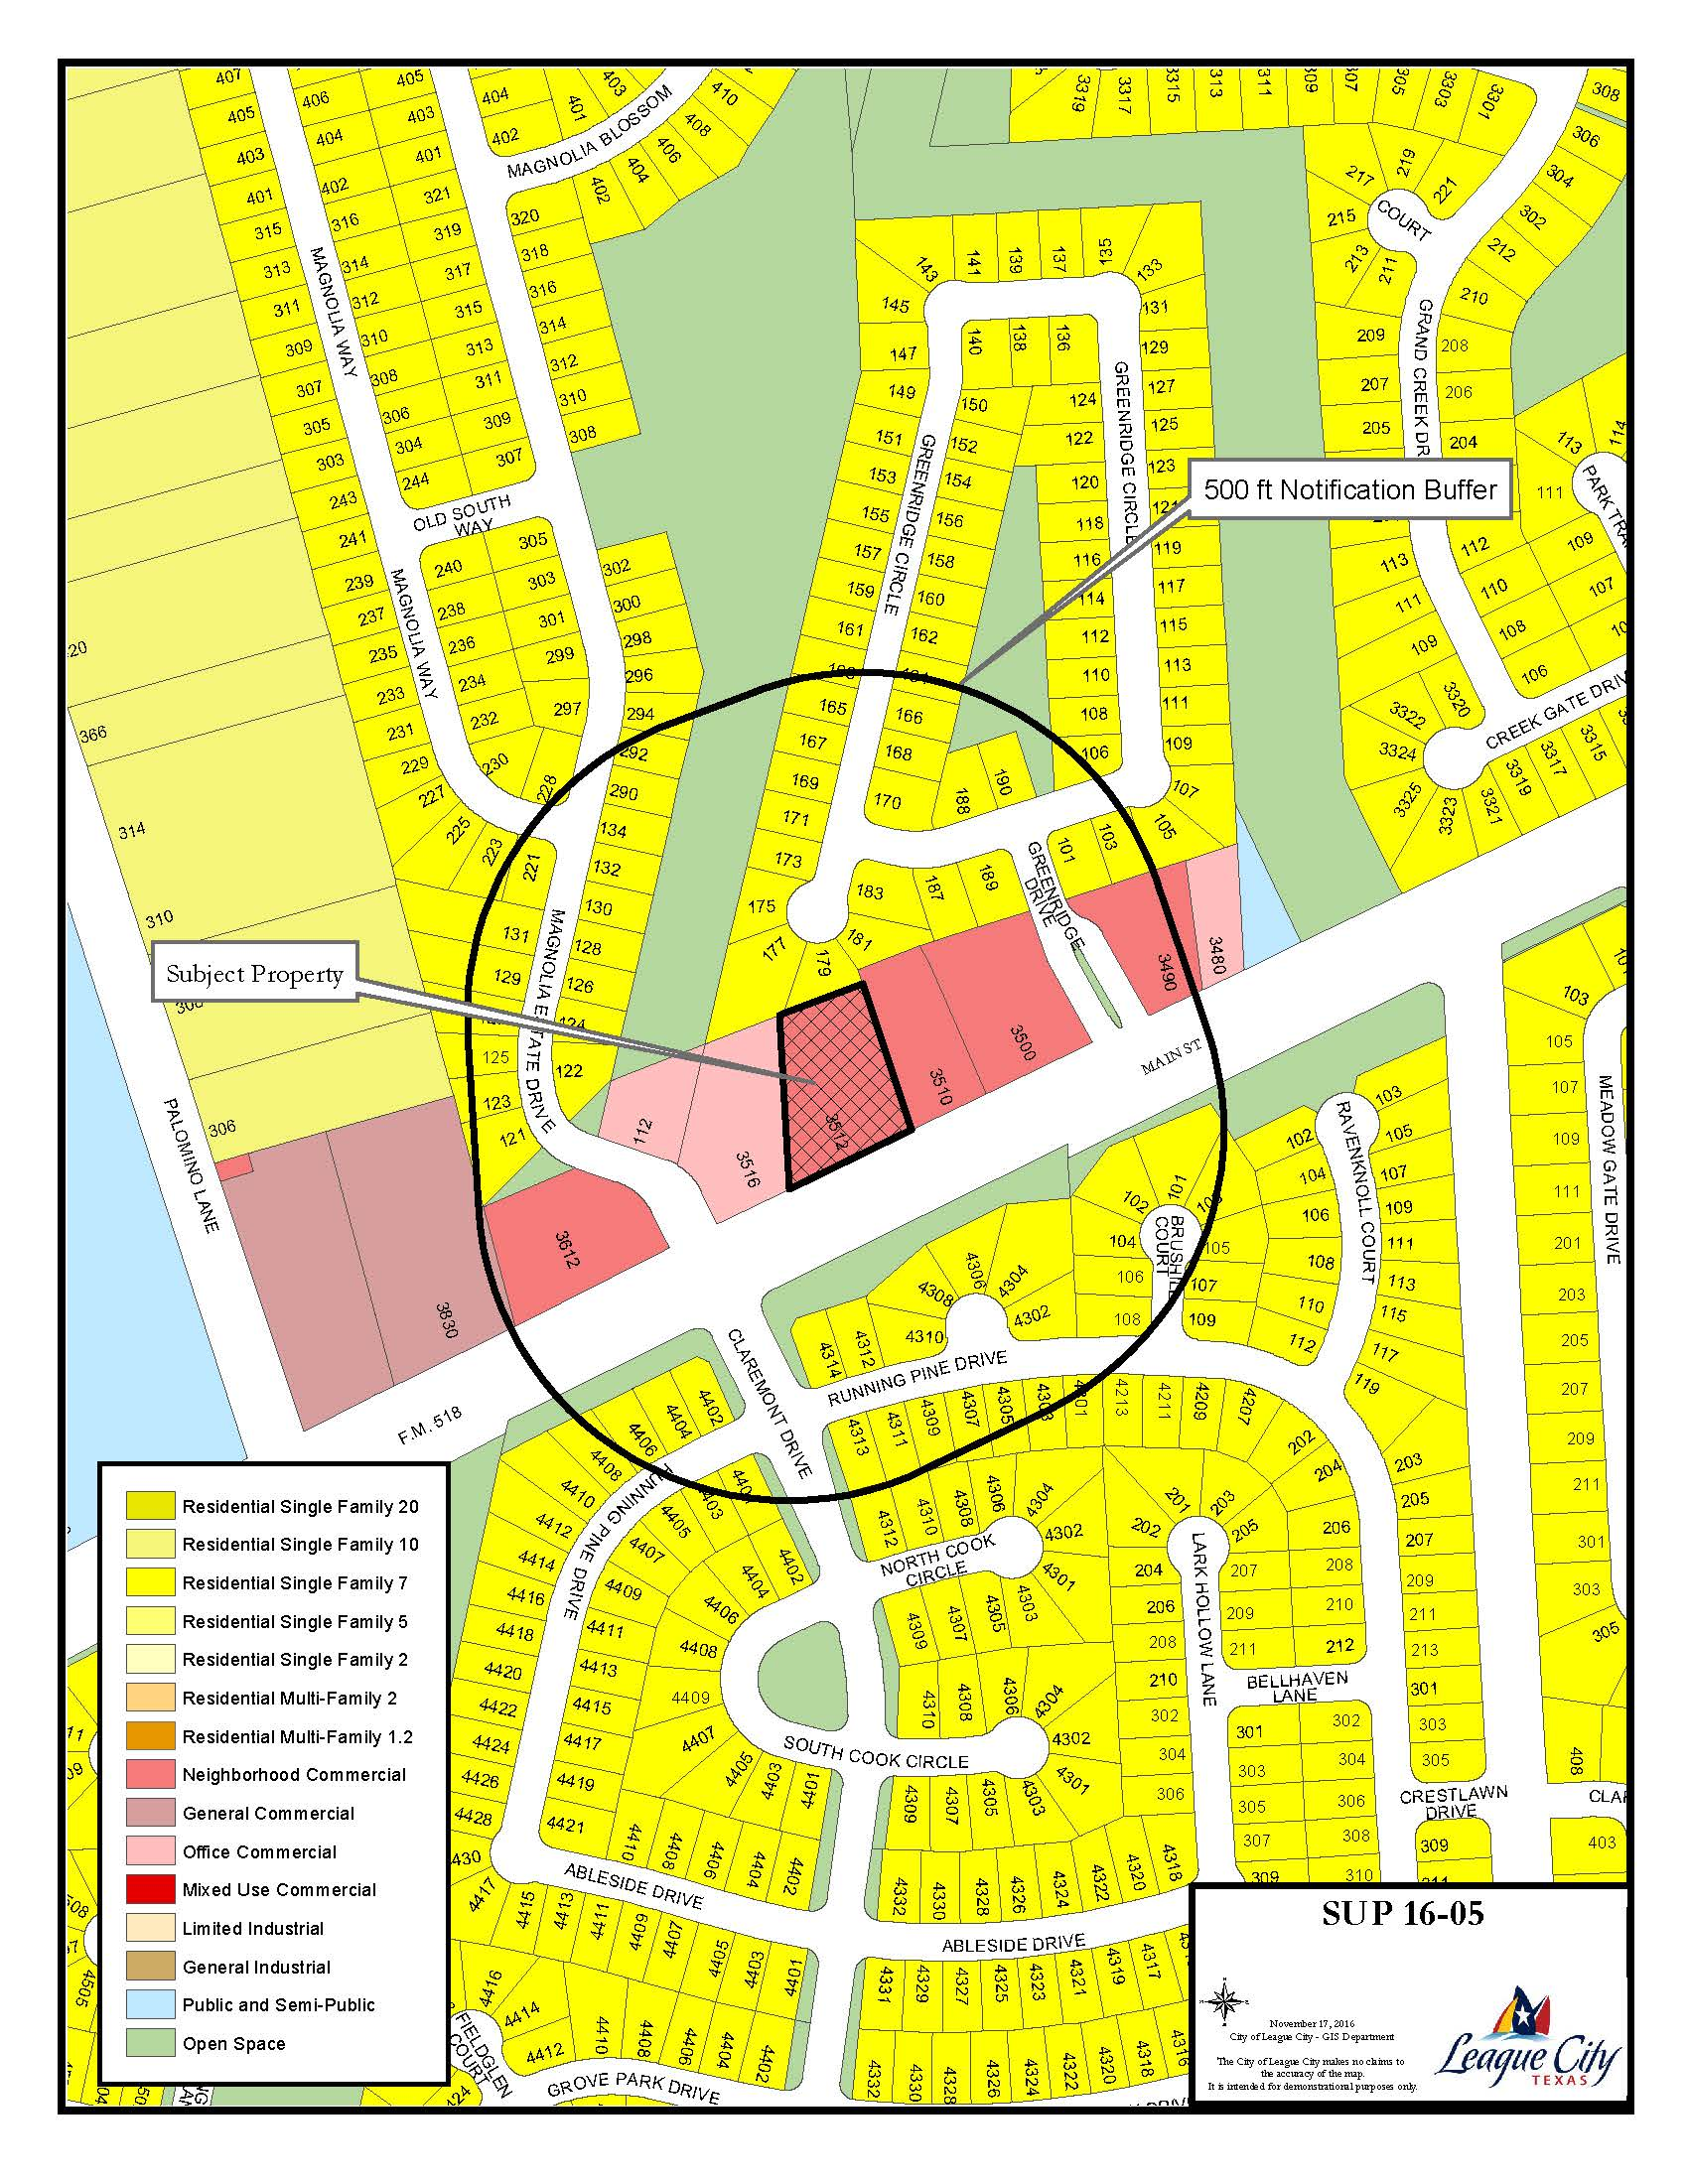 SUP 16-05 Zoning map